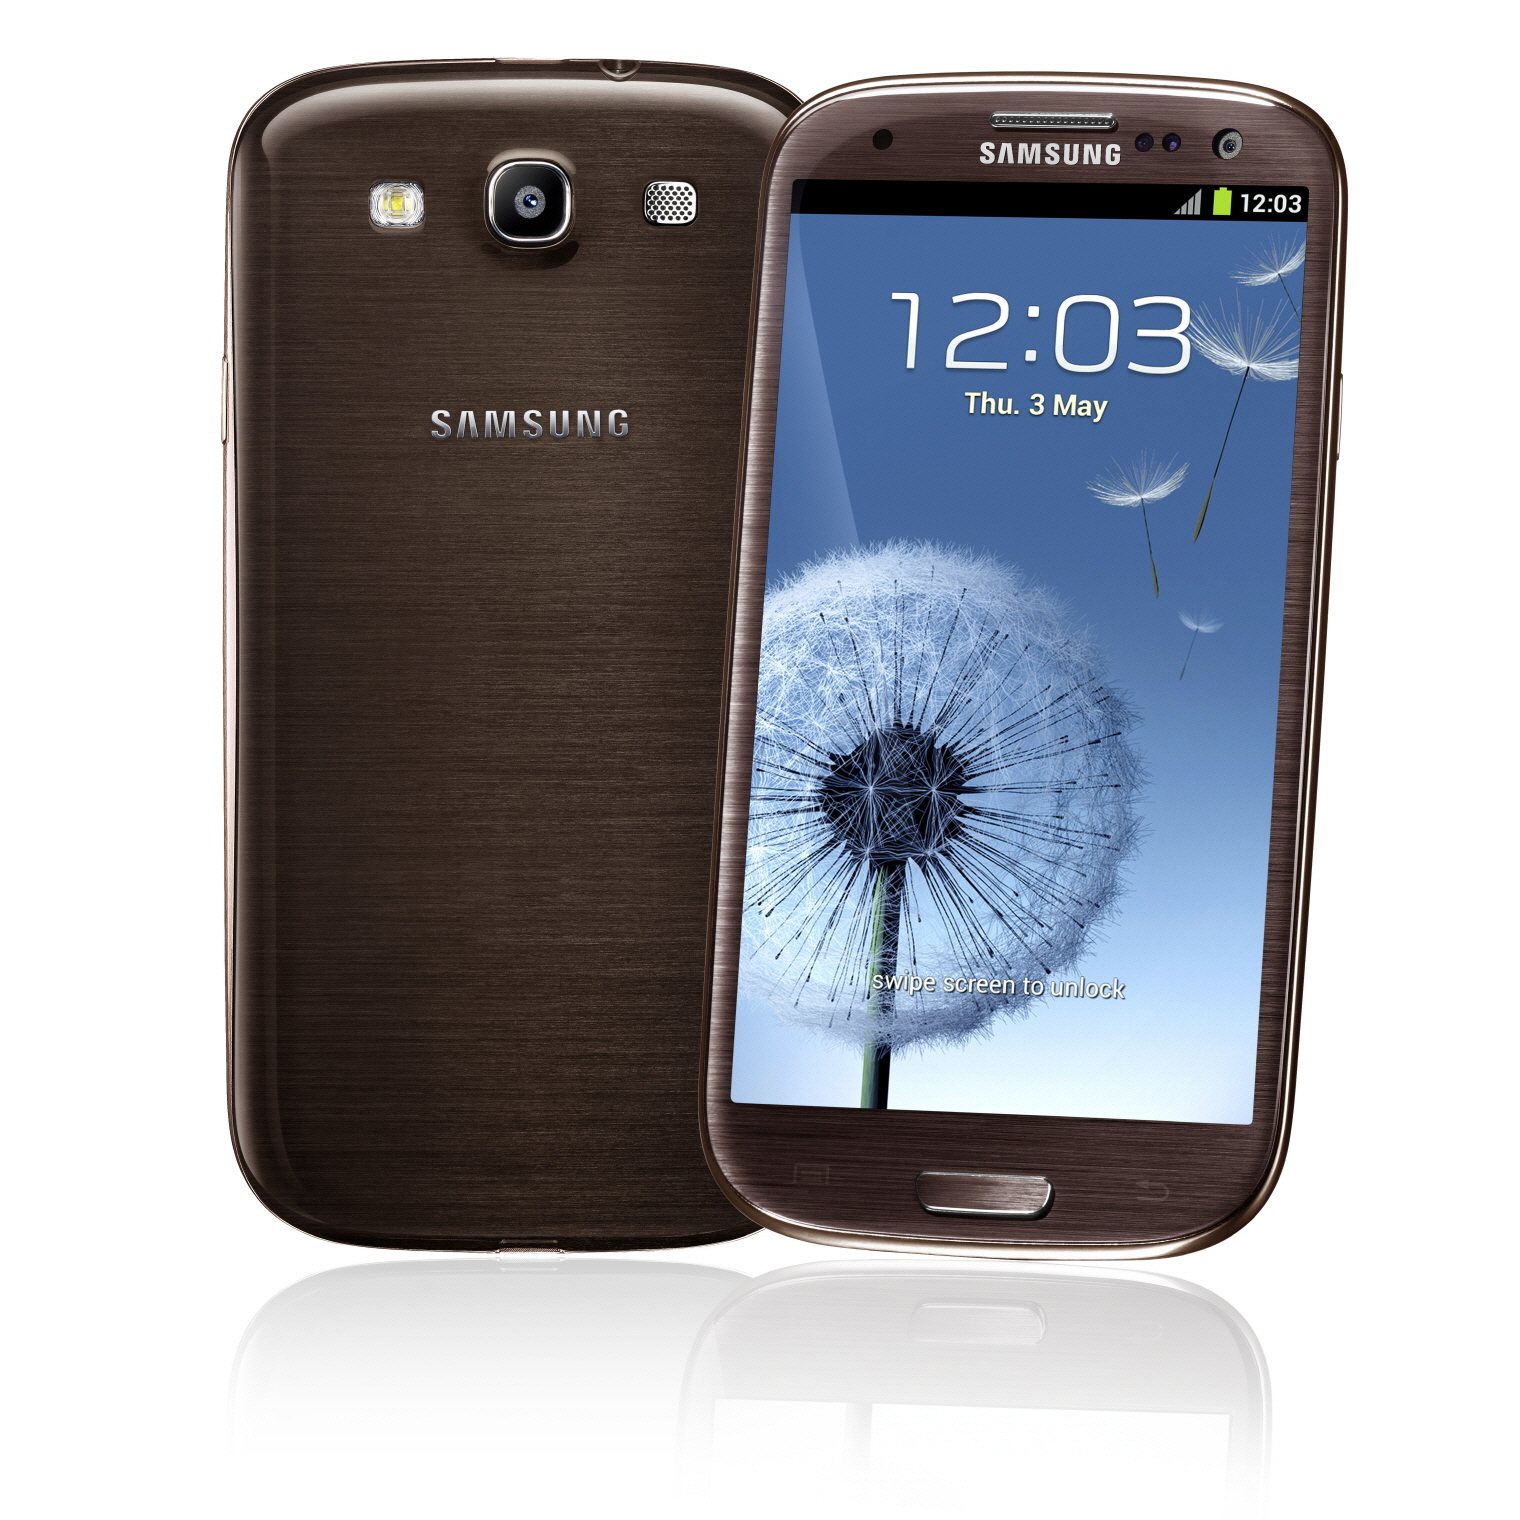 Samsung galaxy s3 brown 16gb android 4g lte phone verizon excellent